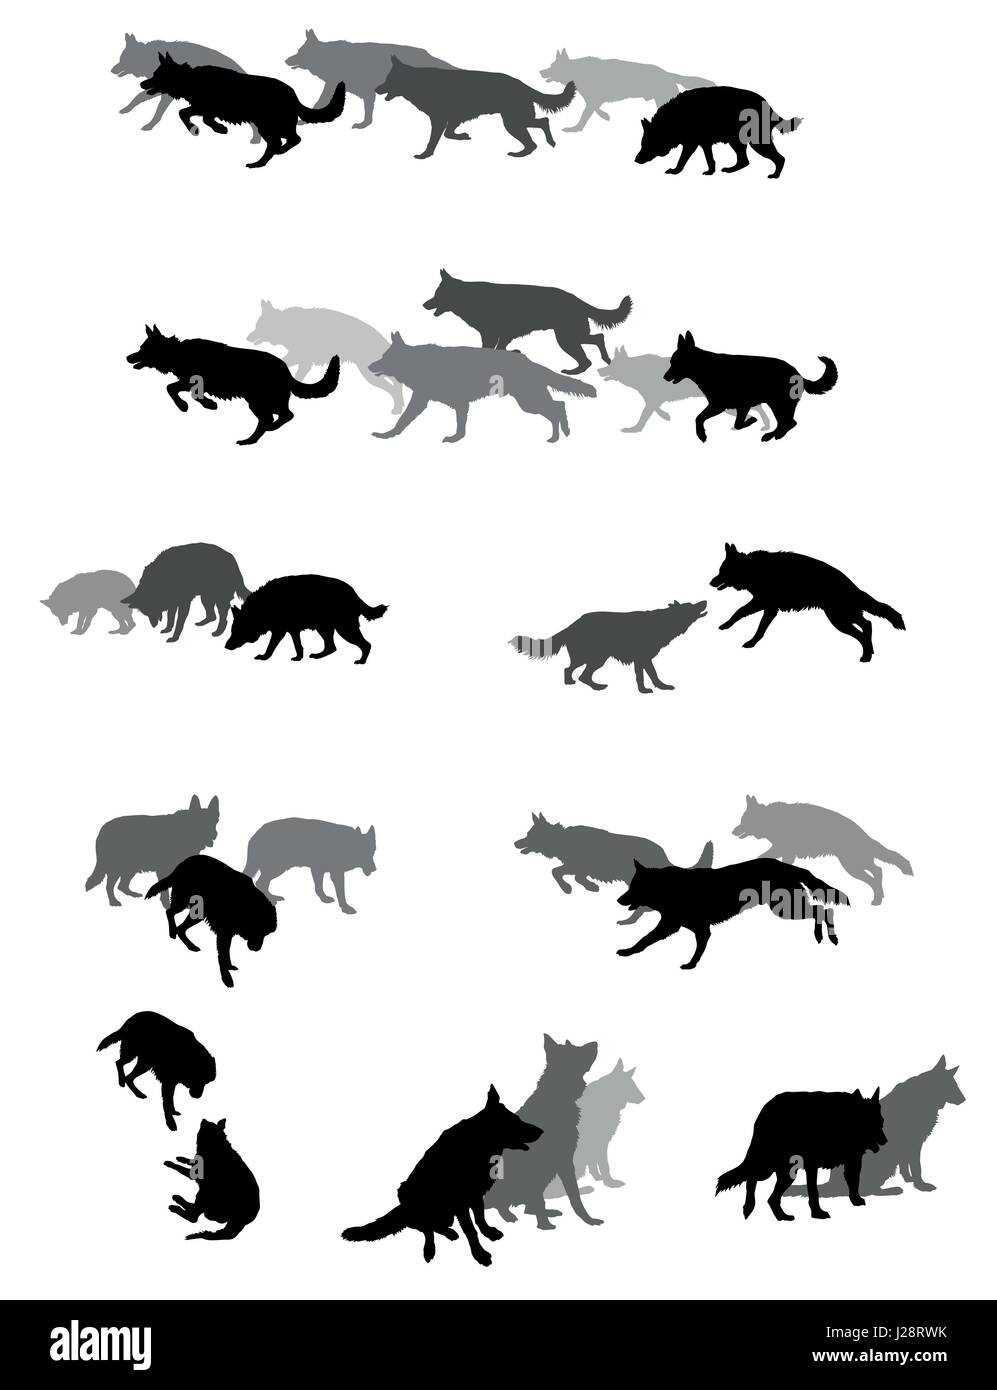 Set Vector Silhouettes Group Of Dogs German Shepherd Dog Black And